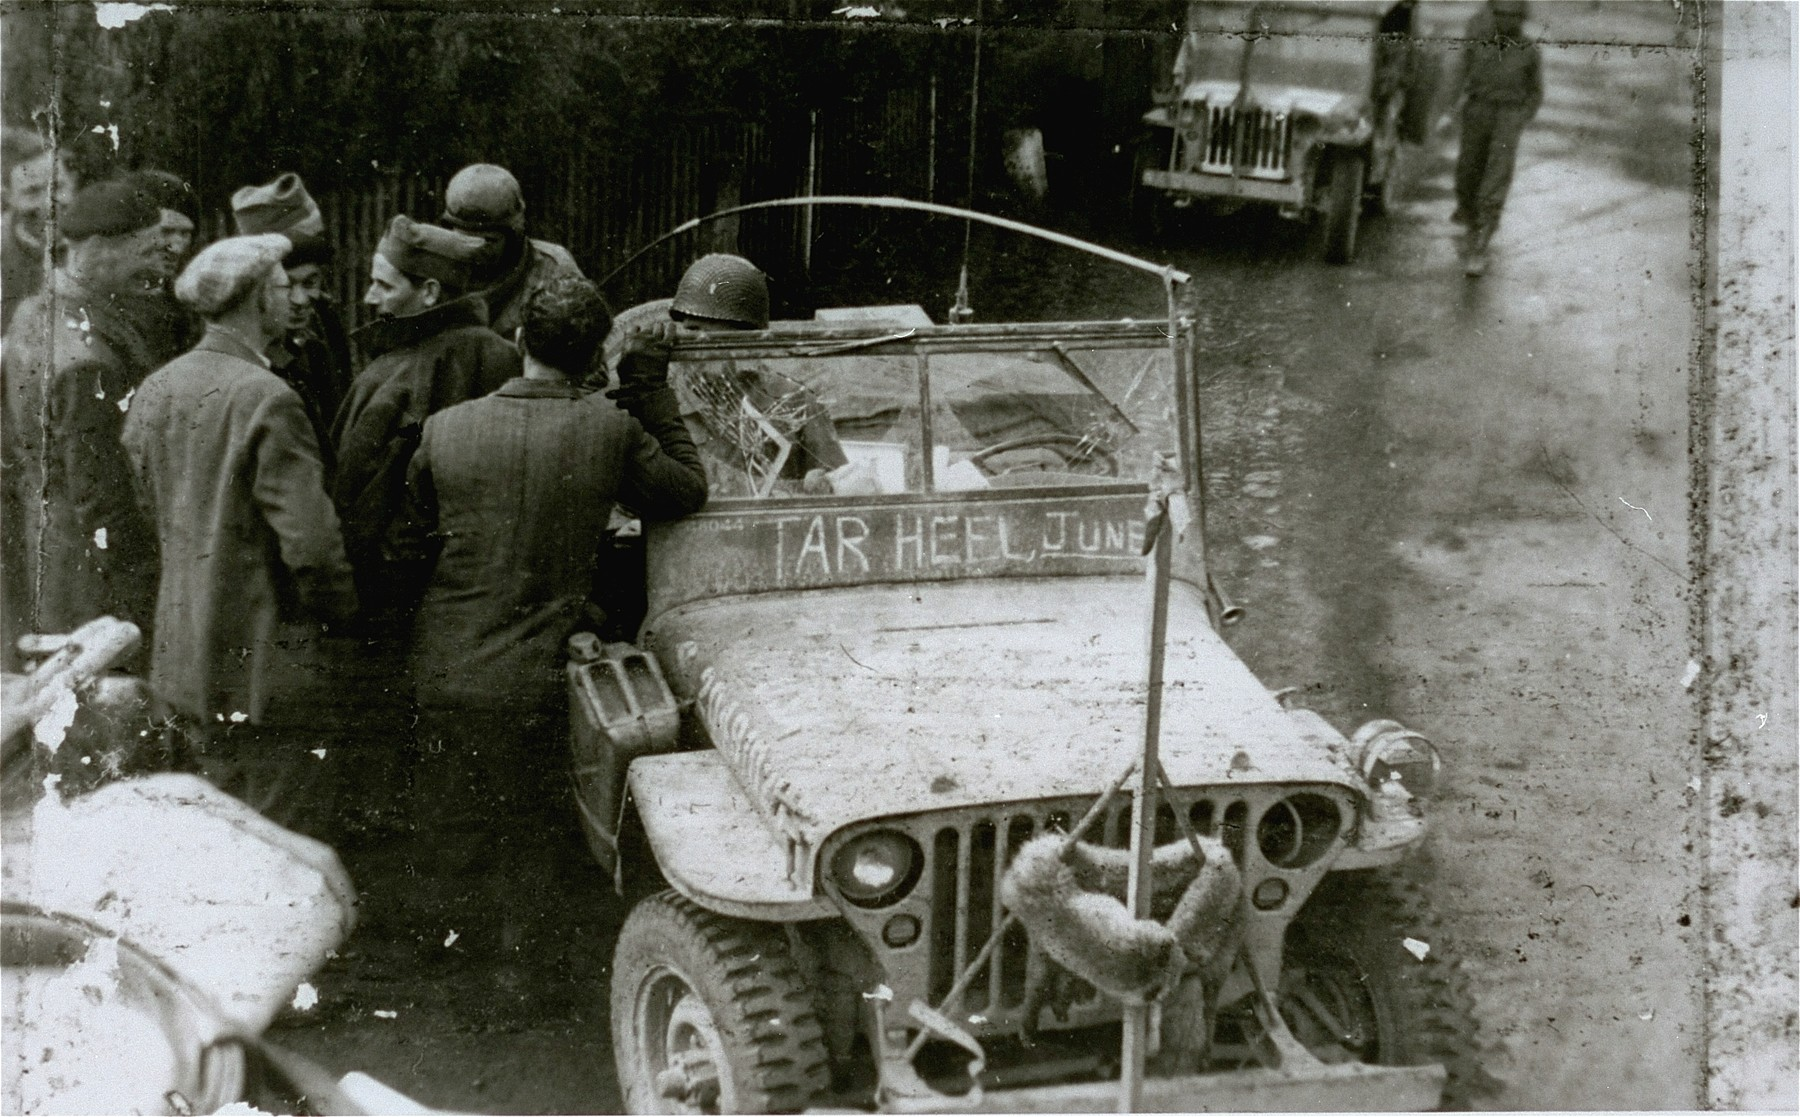 Survivors gather around an American military vehicle in the Mauthausen concentration camp.